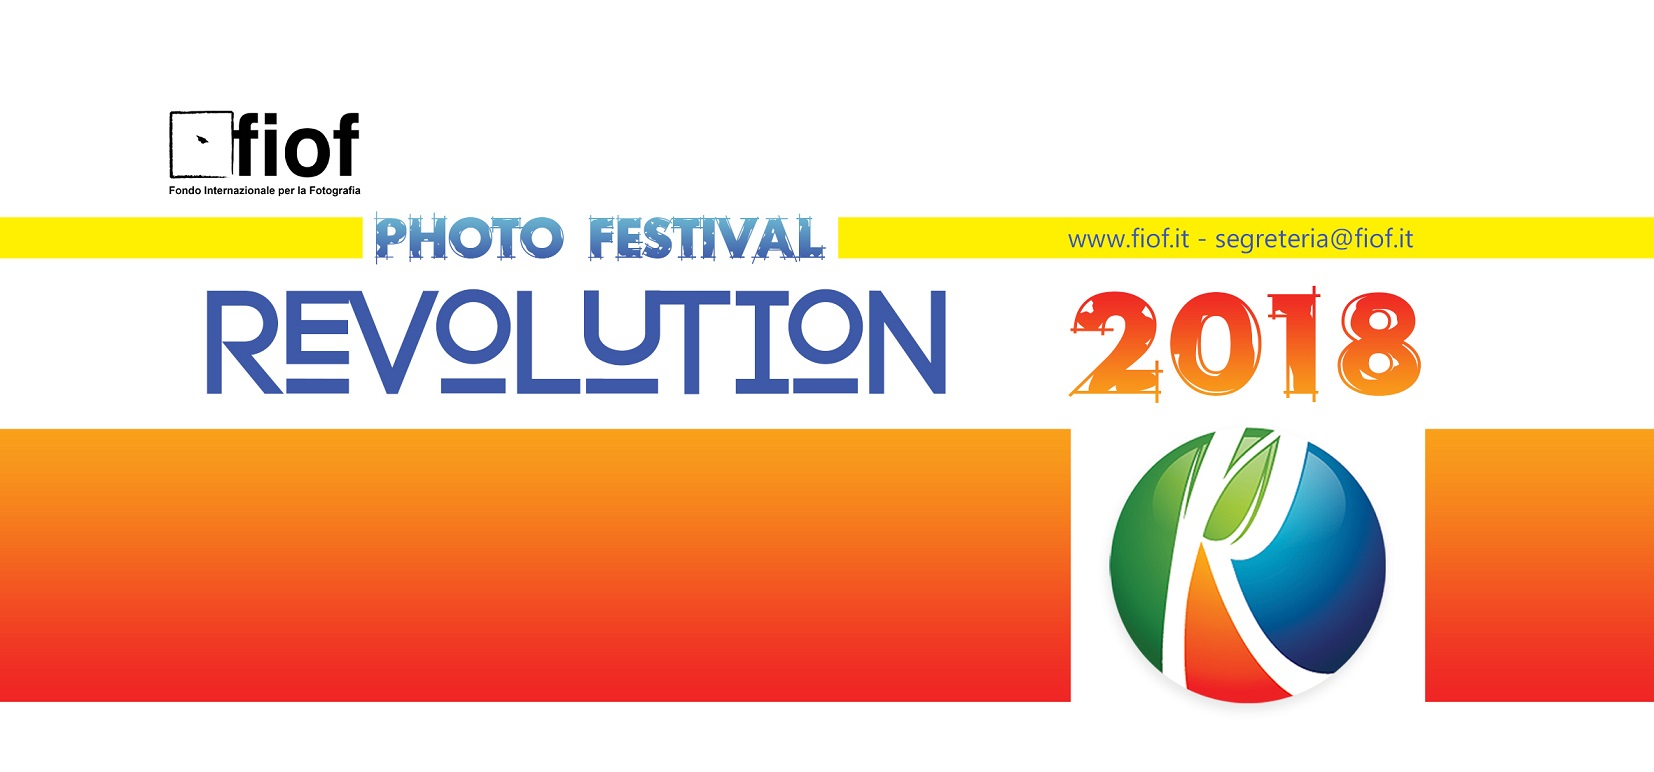 R-evolution summer festival 2018